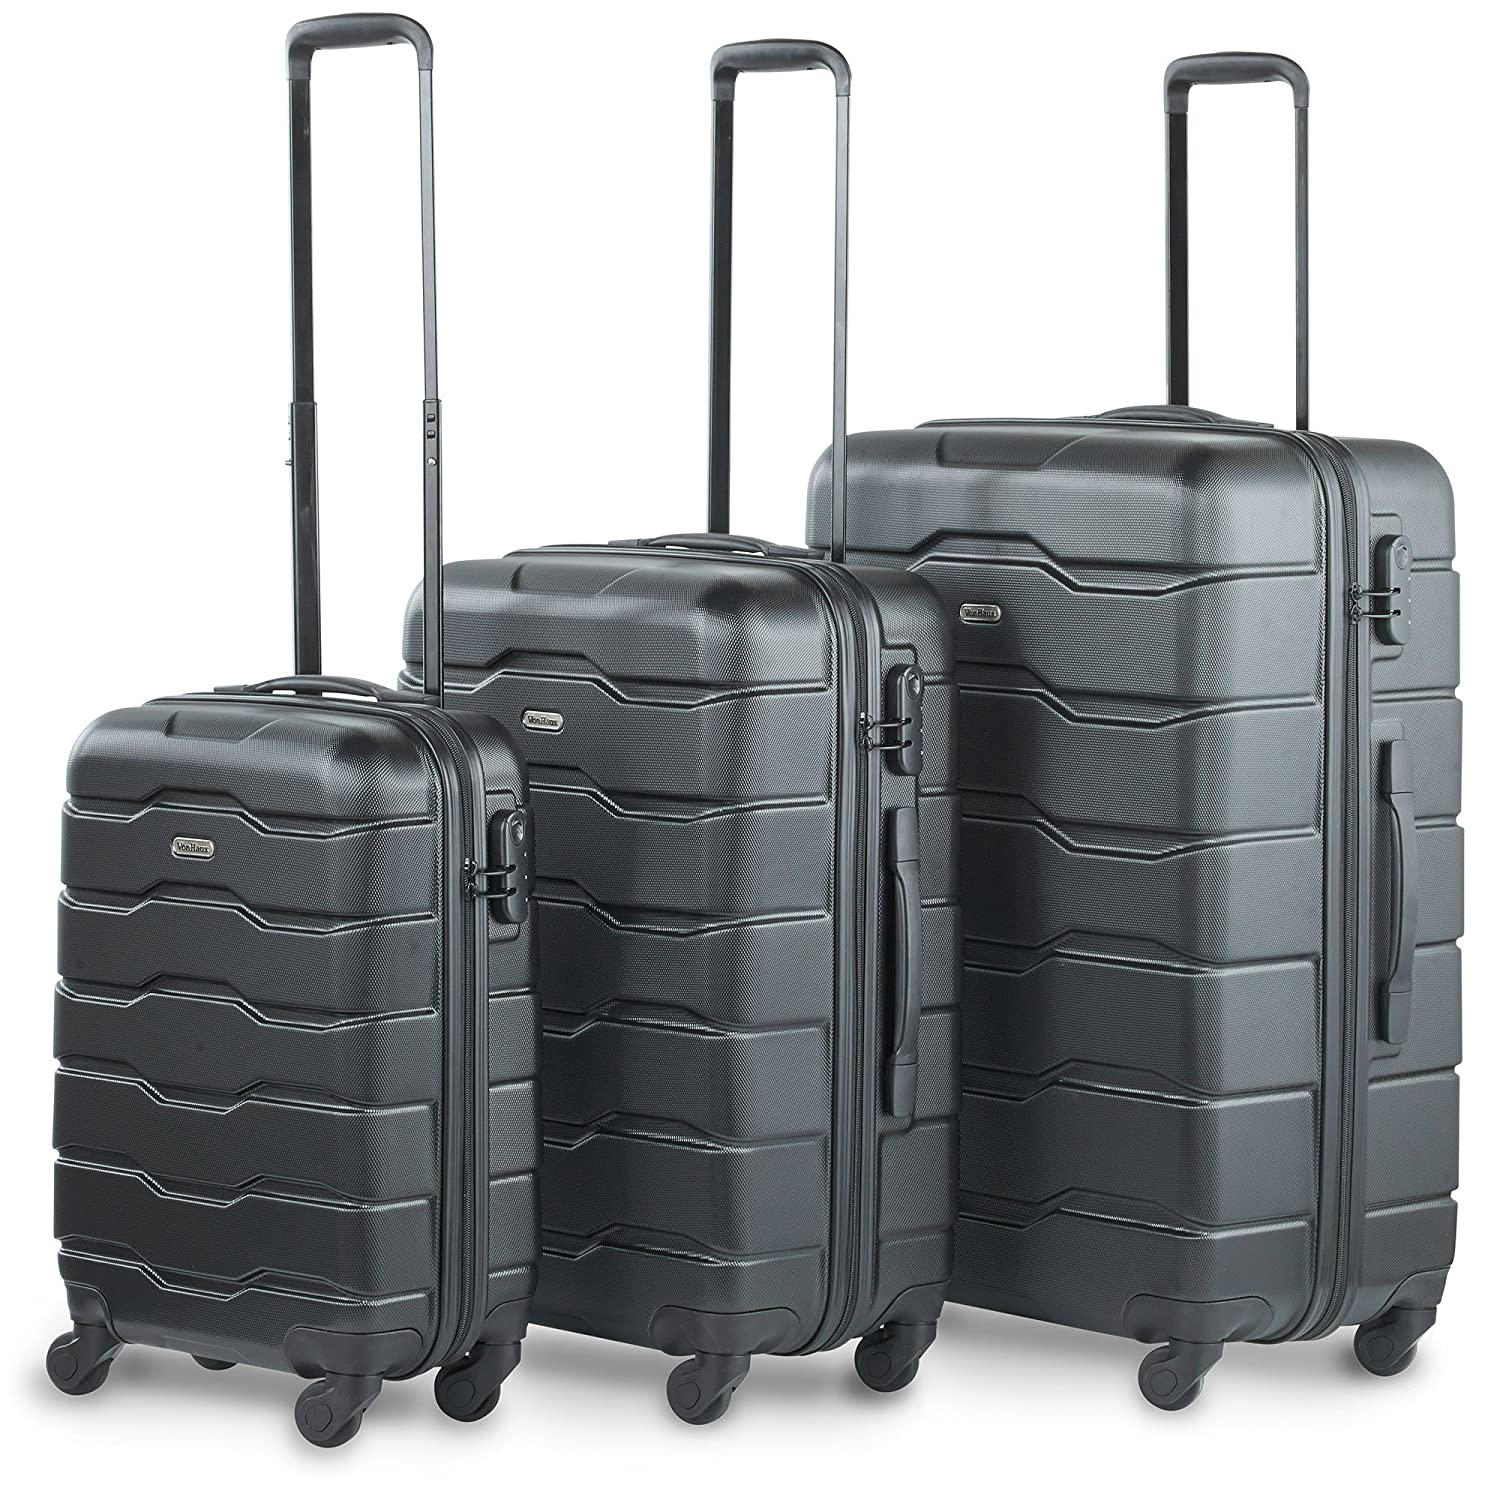 "195f67f3758d VonHaus Luggage Set of 3 ABS Lightweight Hard Shell Black Suitcase - 4  Wheel 360° Spinner - Cabin Travel Trolley – (21"" 25"" 29"")"